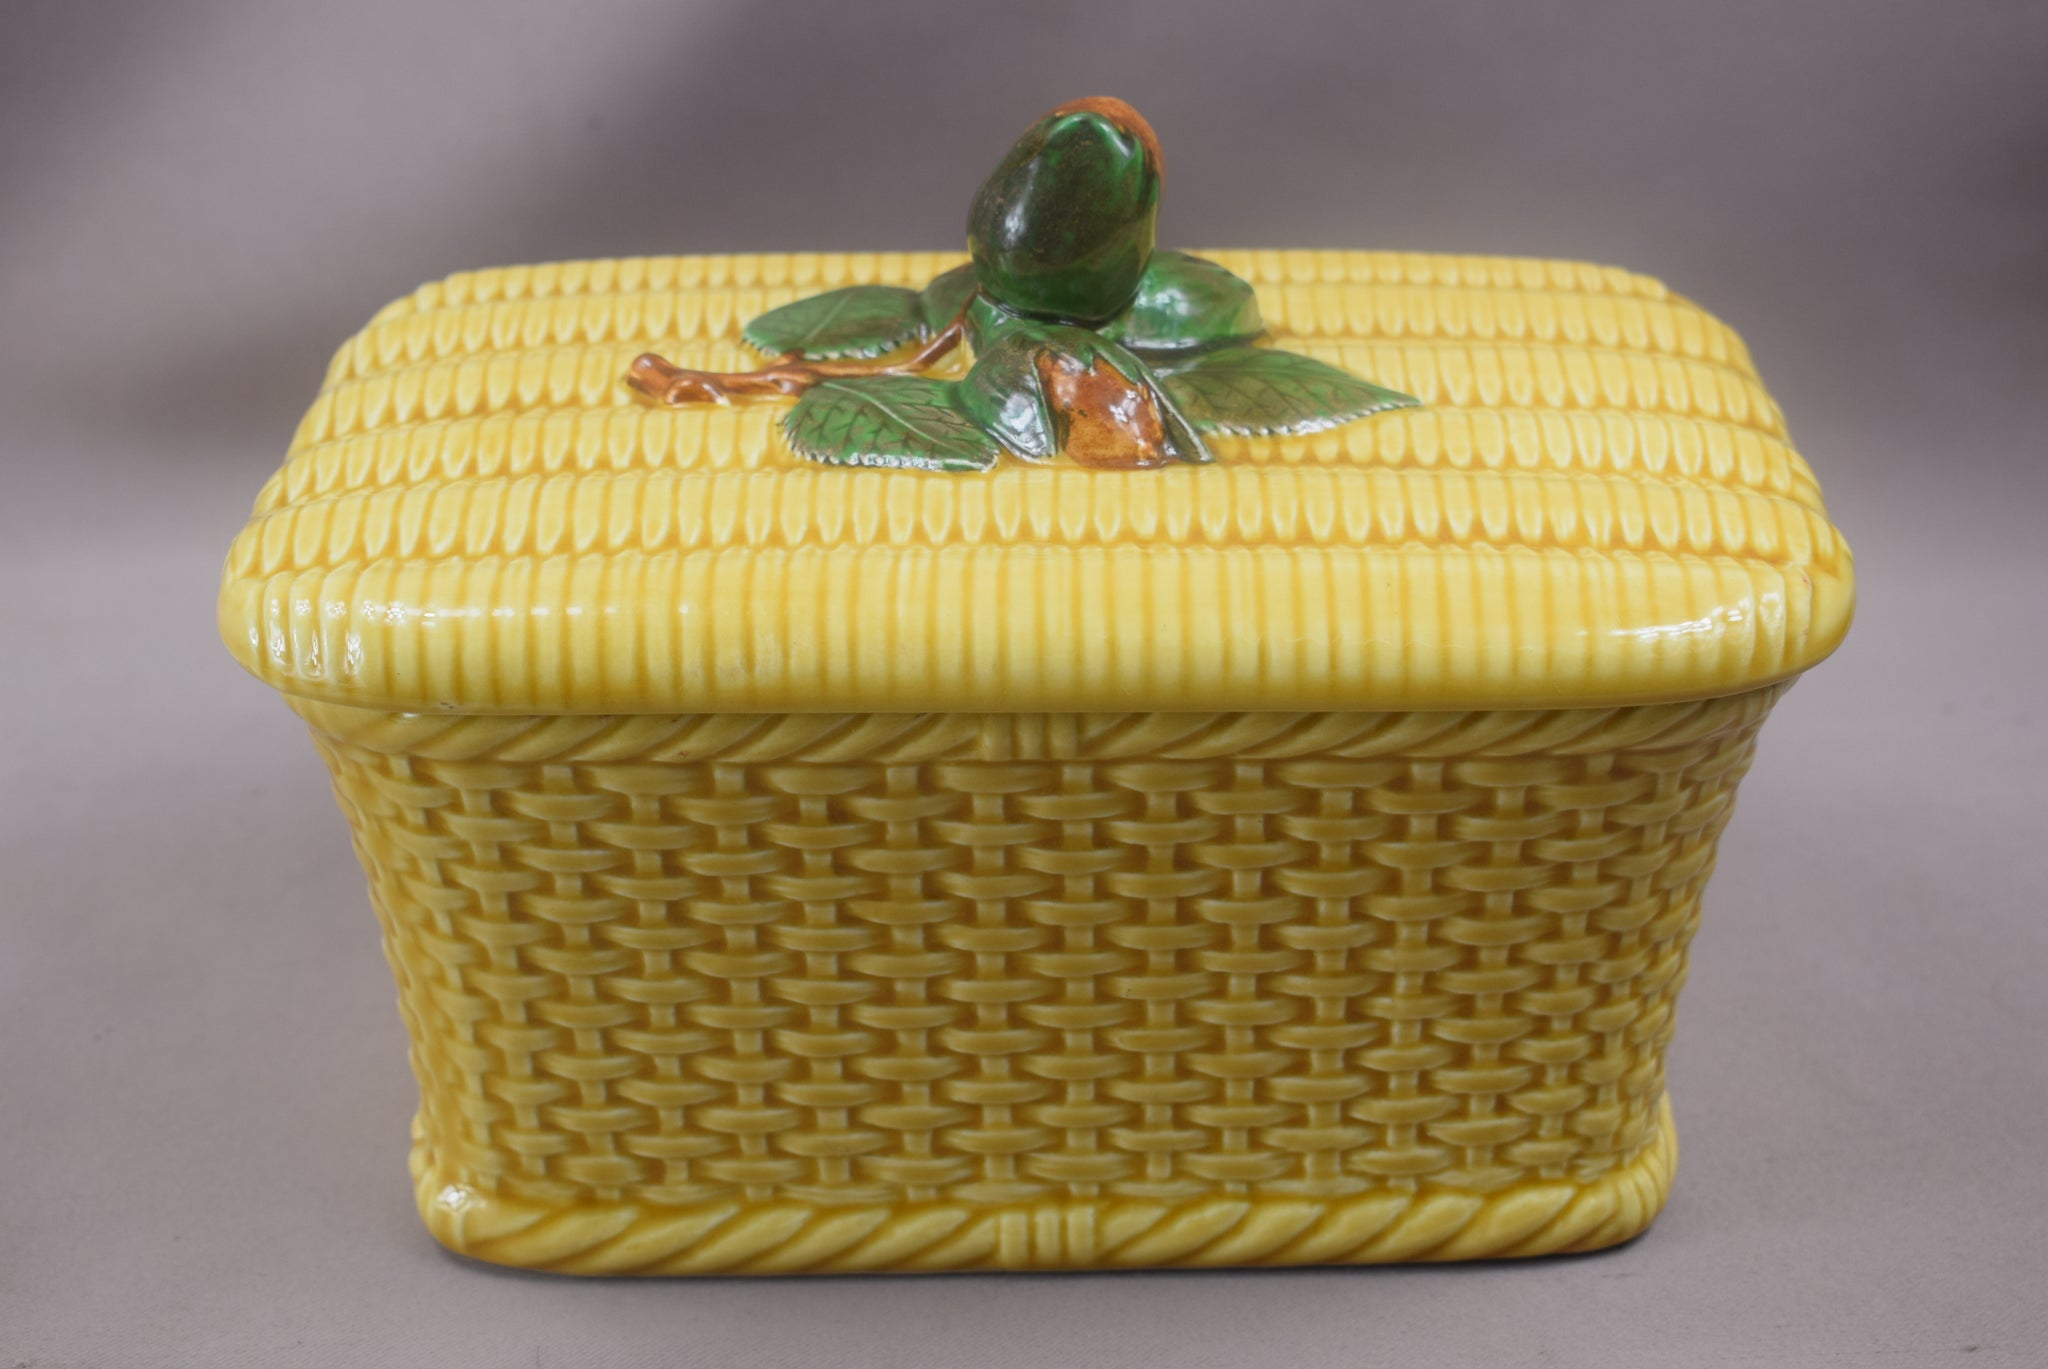 French Vintage Majolica Basket Tureen, Hazelnut Wicker Basket Lidded Box, Yellow Glazed Pottery Pot, French Country Decor